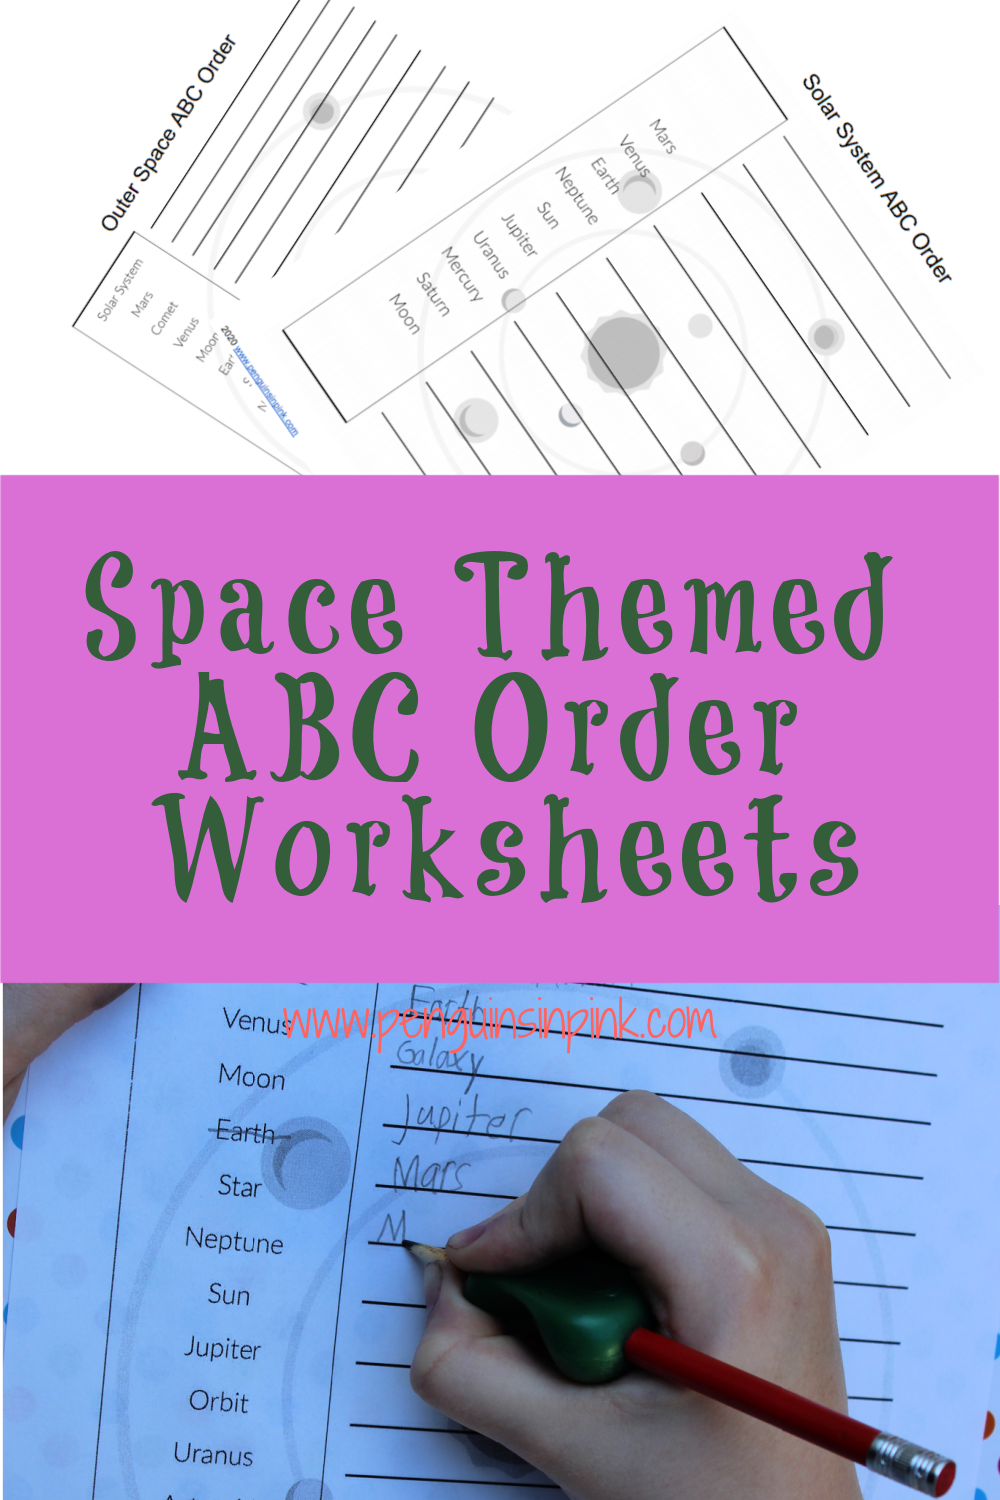 These FREE Printable ABC Order Worksheets are an easy way to help kids review their space words or terms. There are 2 different ABC order worksheets both with answer keys. The first has 10 words and covers just the solar system, the big 8 planets, sun, and moon. While the second includes the solar system and 10 other outer space terms like star, galaxy, and asteroid.